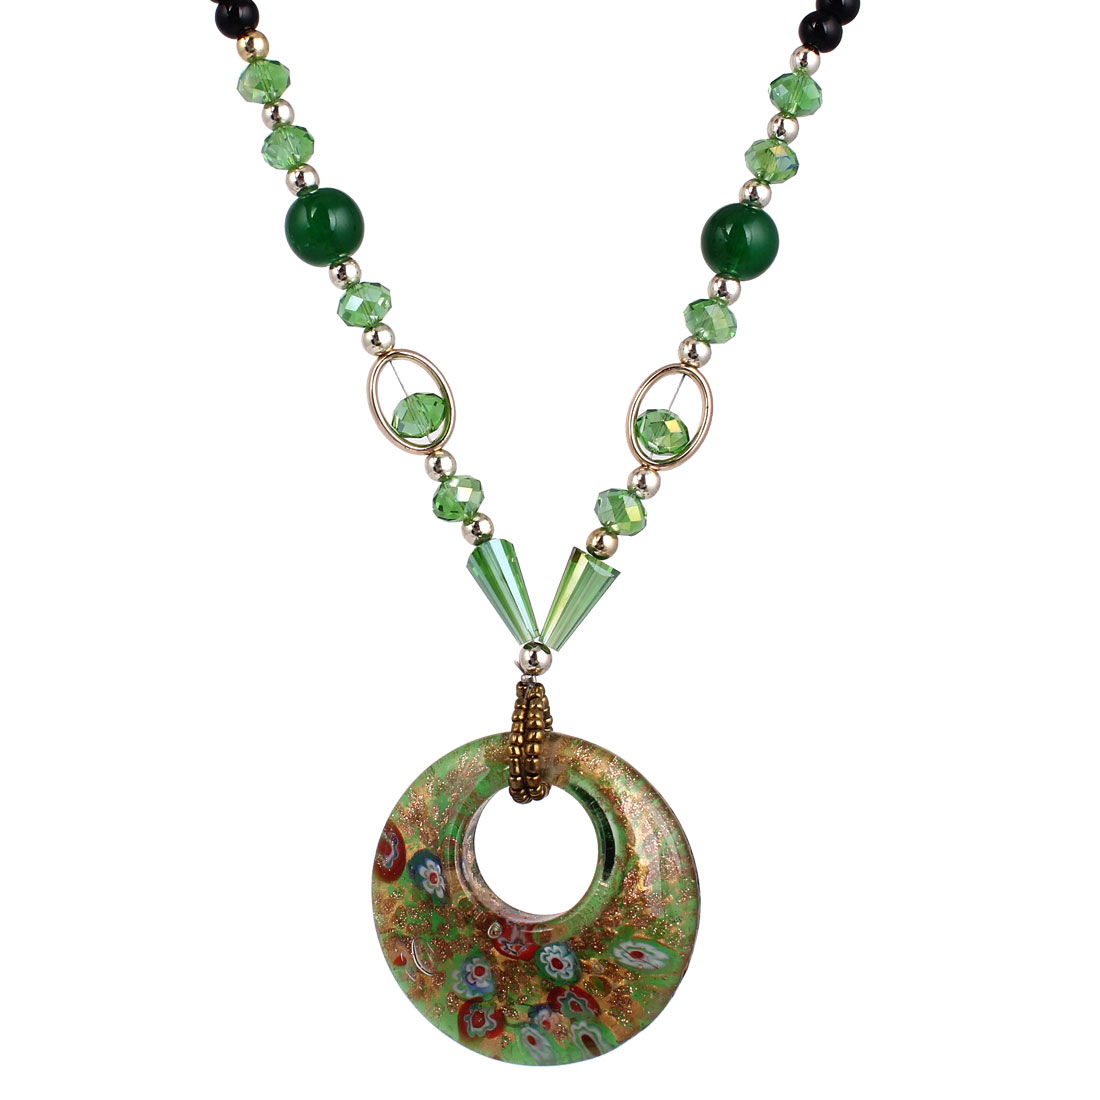 Green Black Plastic Beaded Neck String Double Round Shape Glass Pendant Necklace for Lady